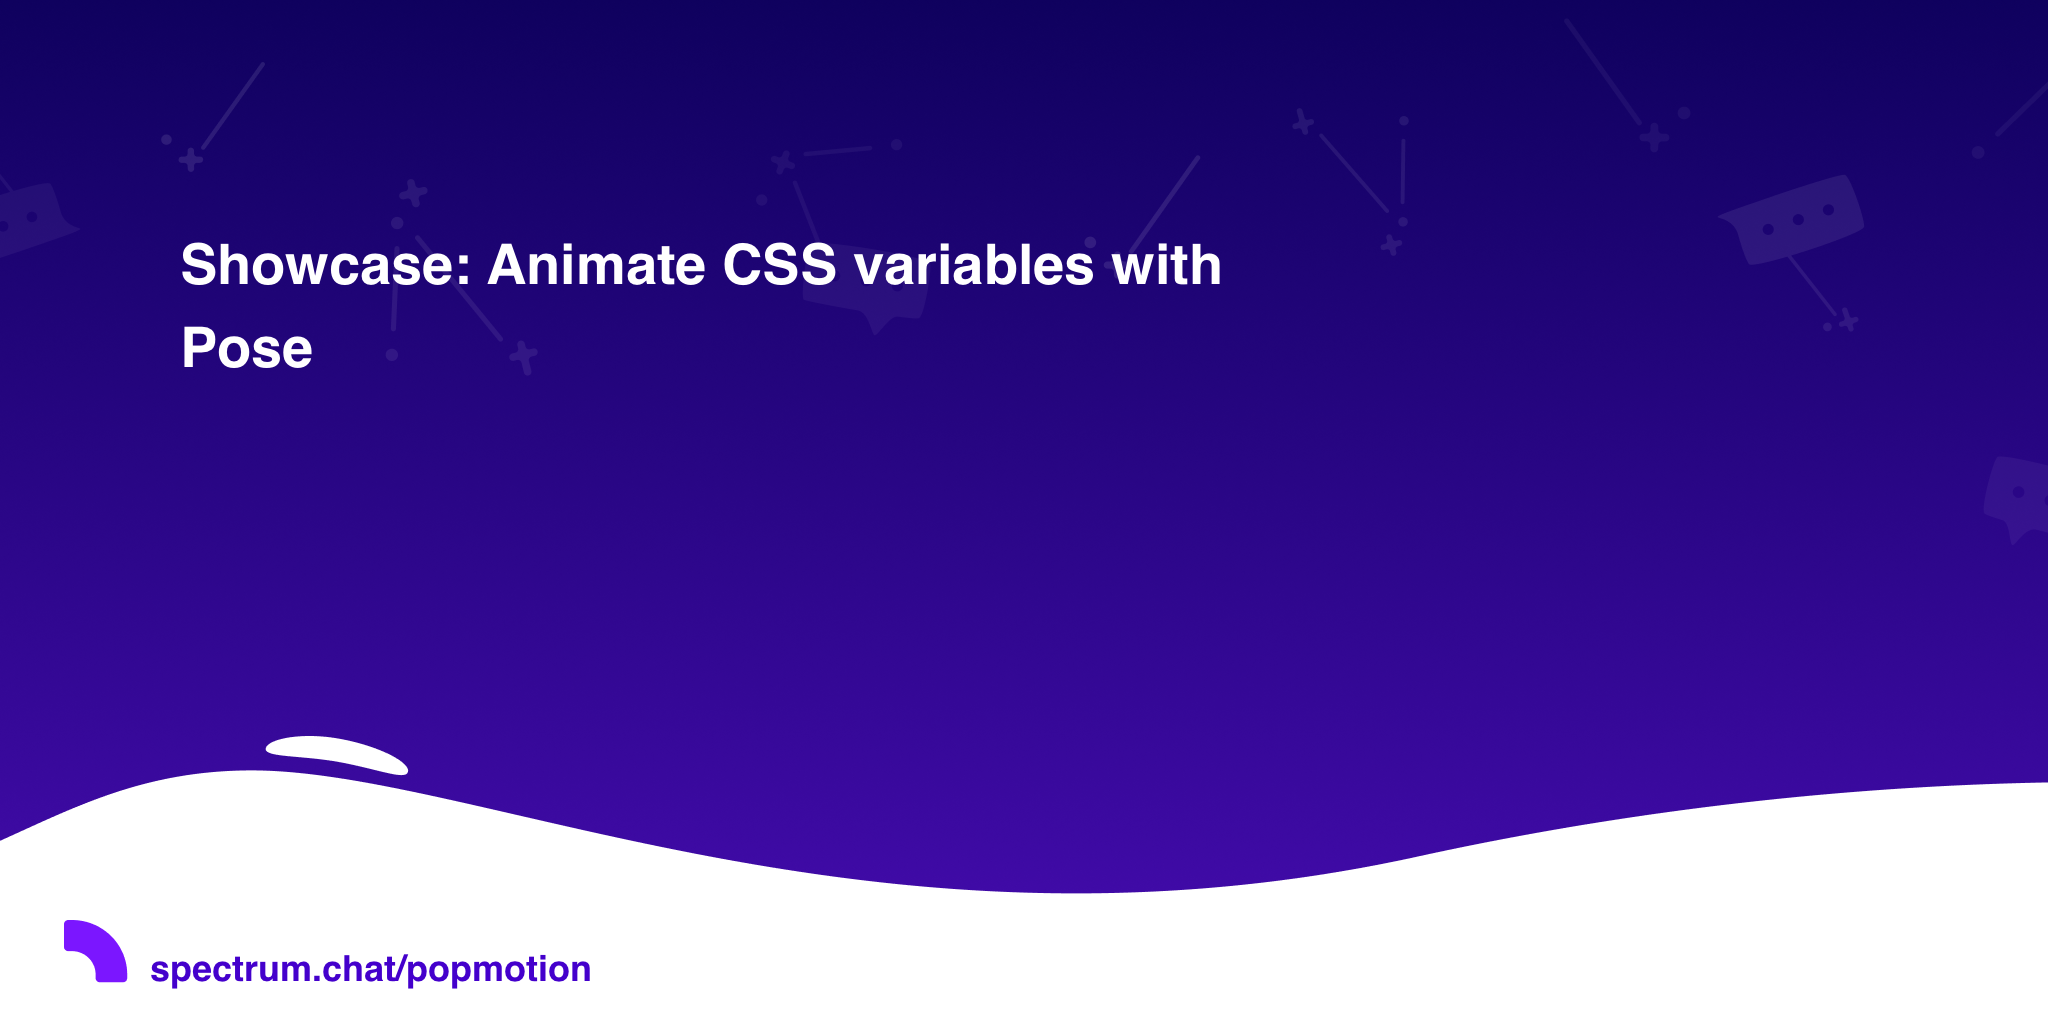 Showcase: Animate CSS variables with Pose · Popmotion